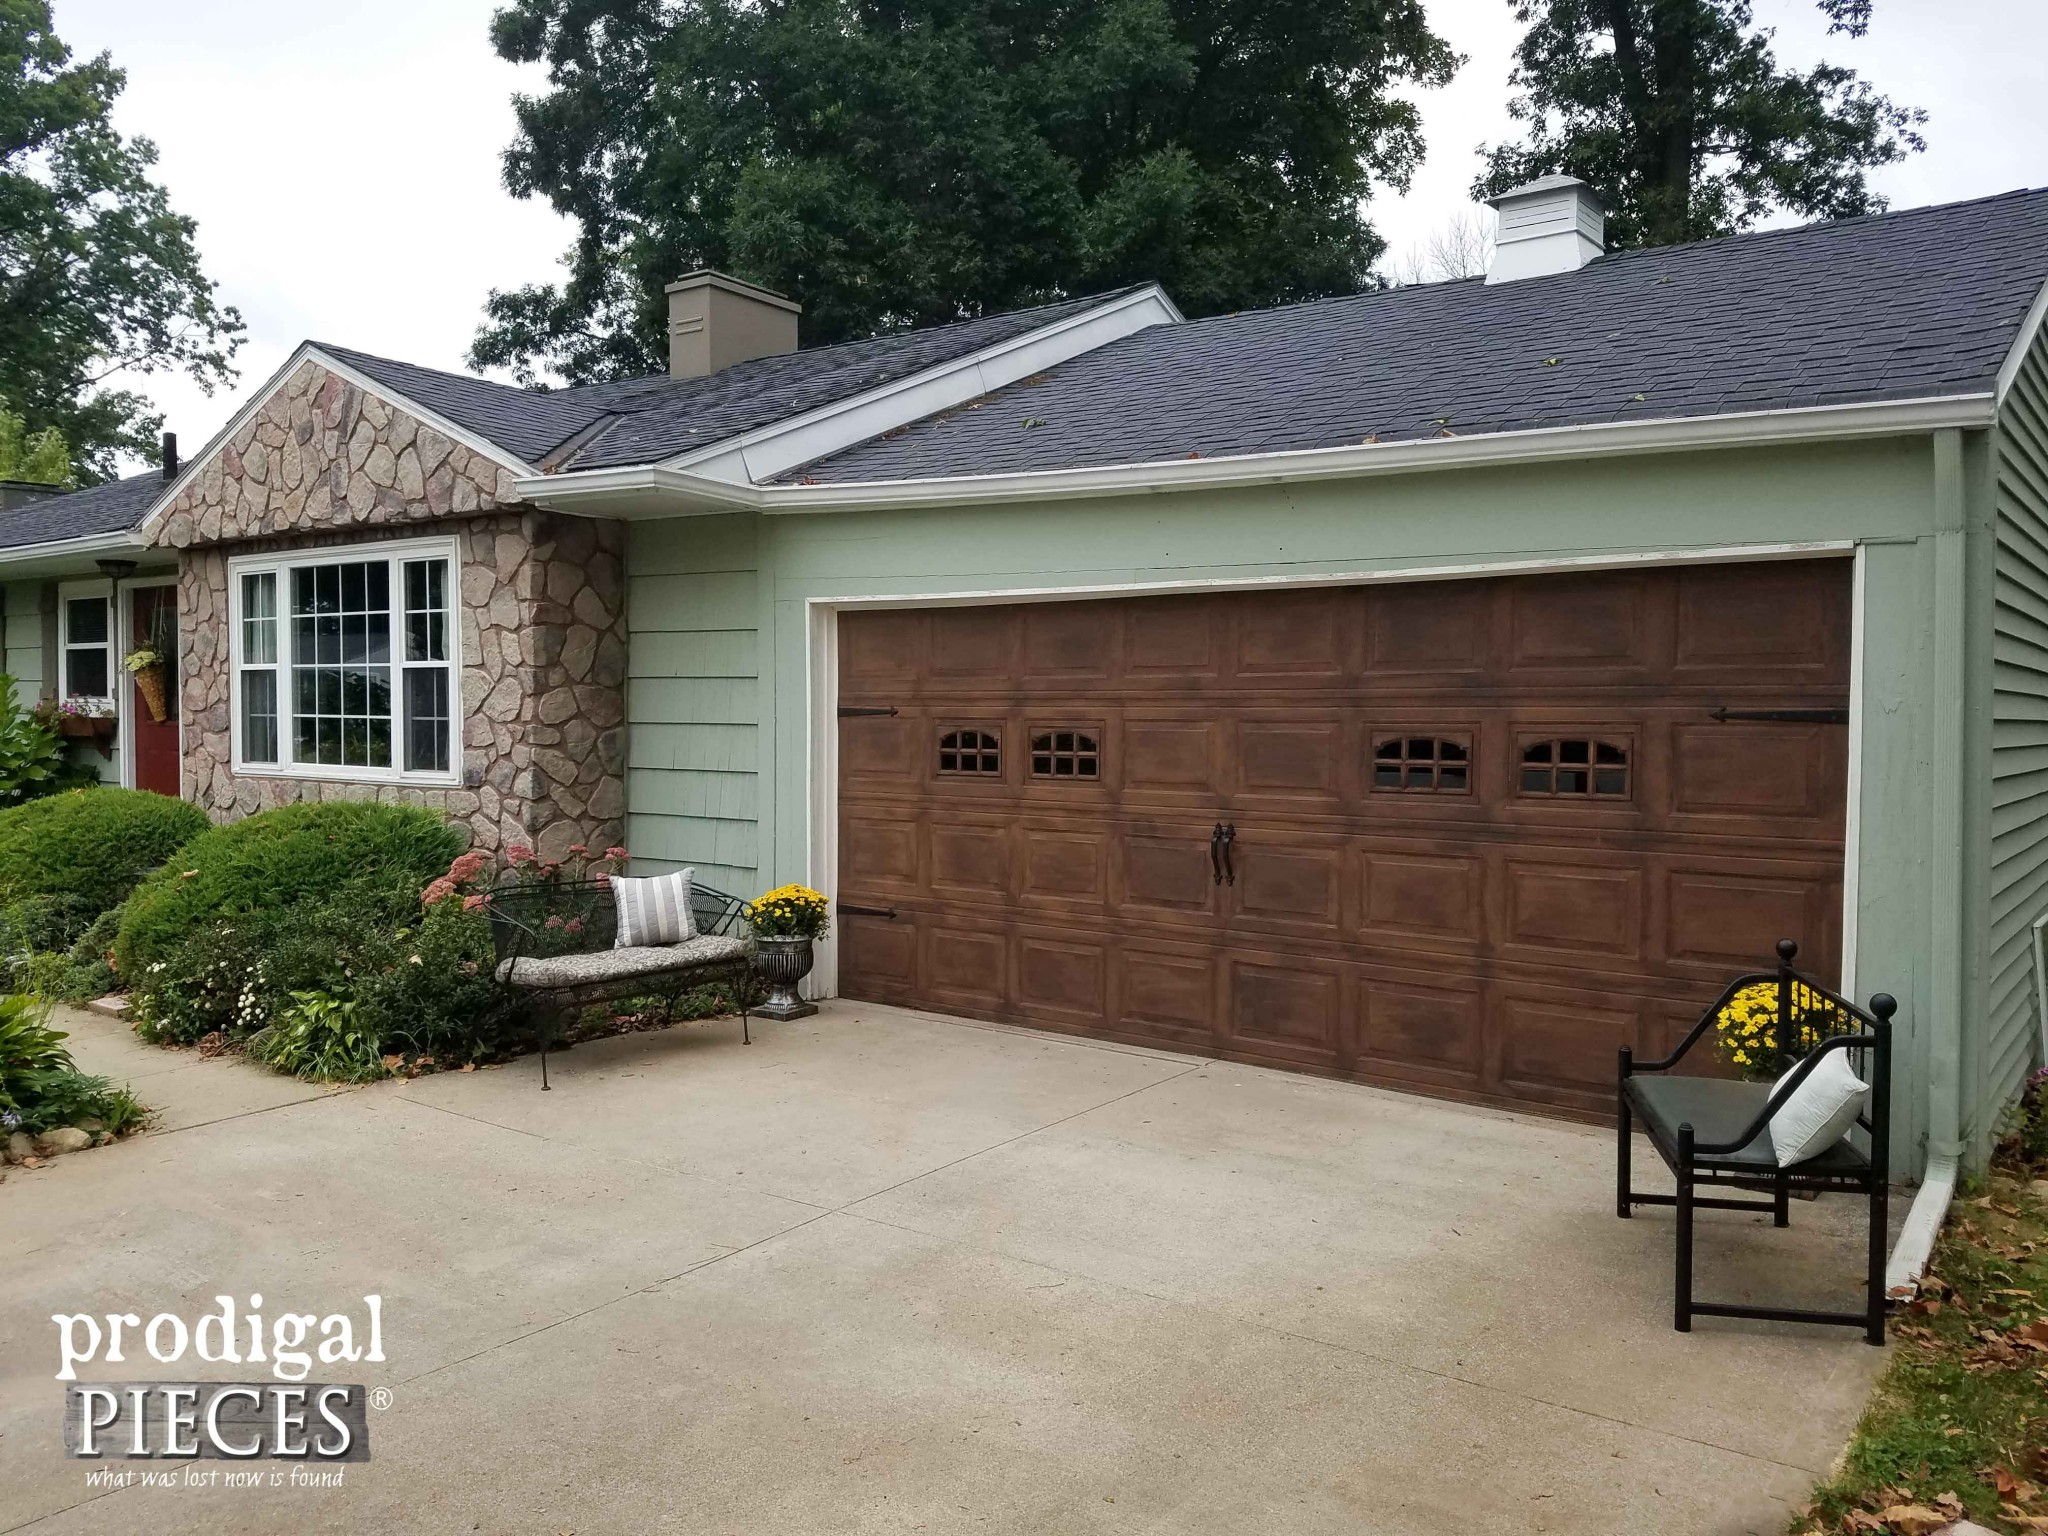 3 Year Update on Faux Wood Garage Door - Still Lookin' Good! | Prodigal Pieces | www.prodigalpieces.com